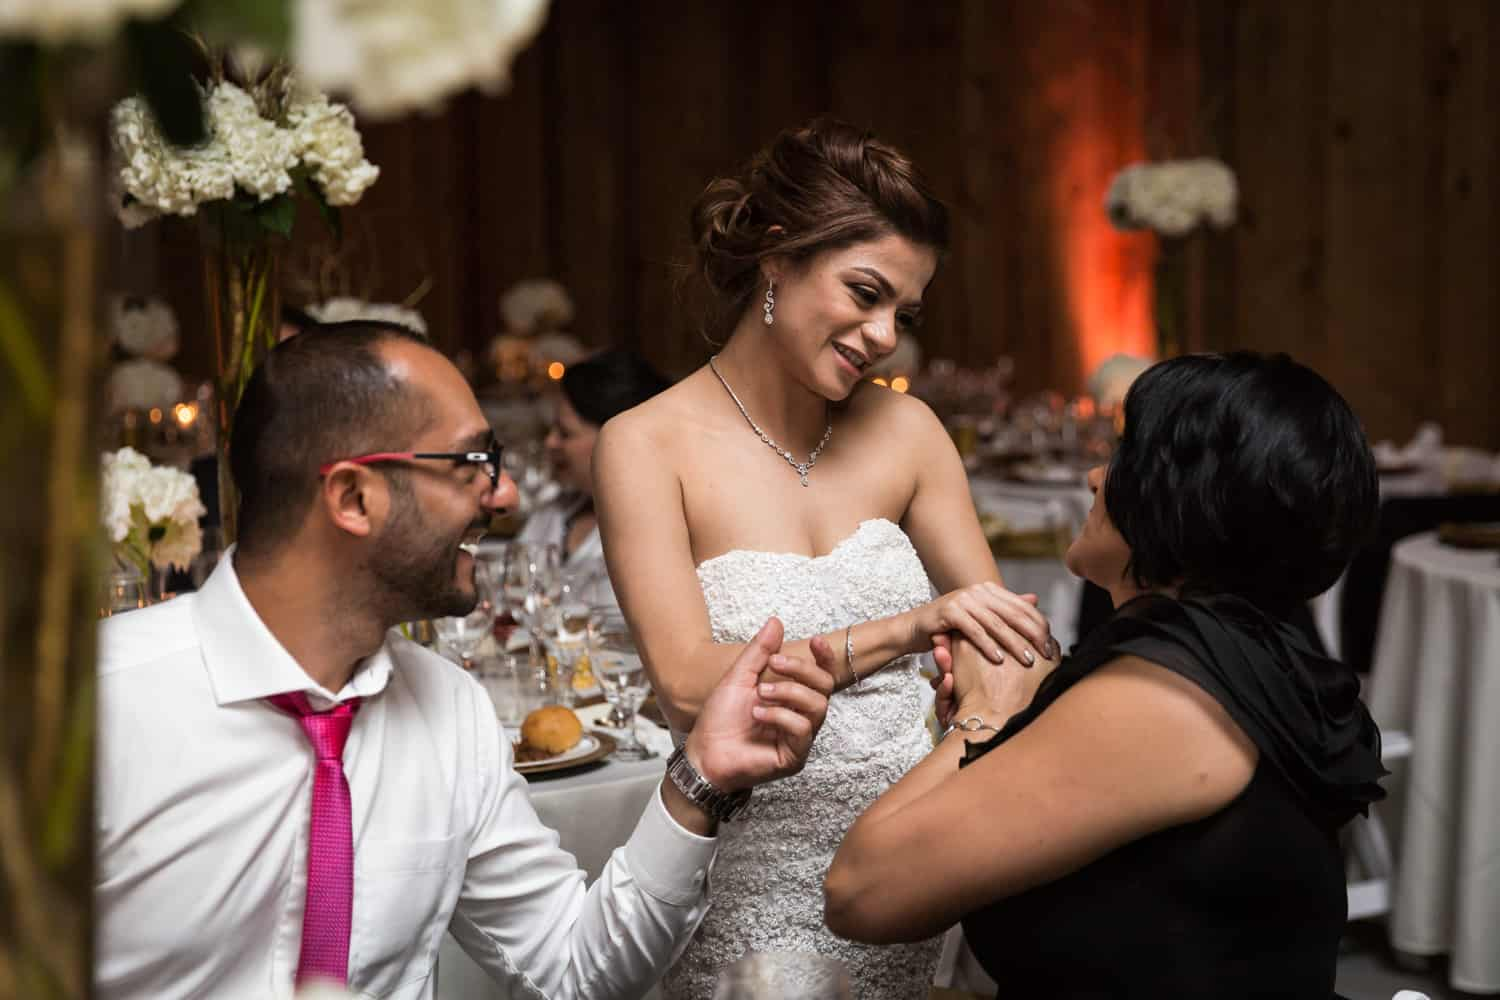 Bride chatting with couple at table